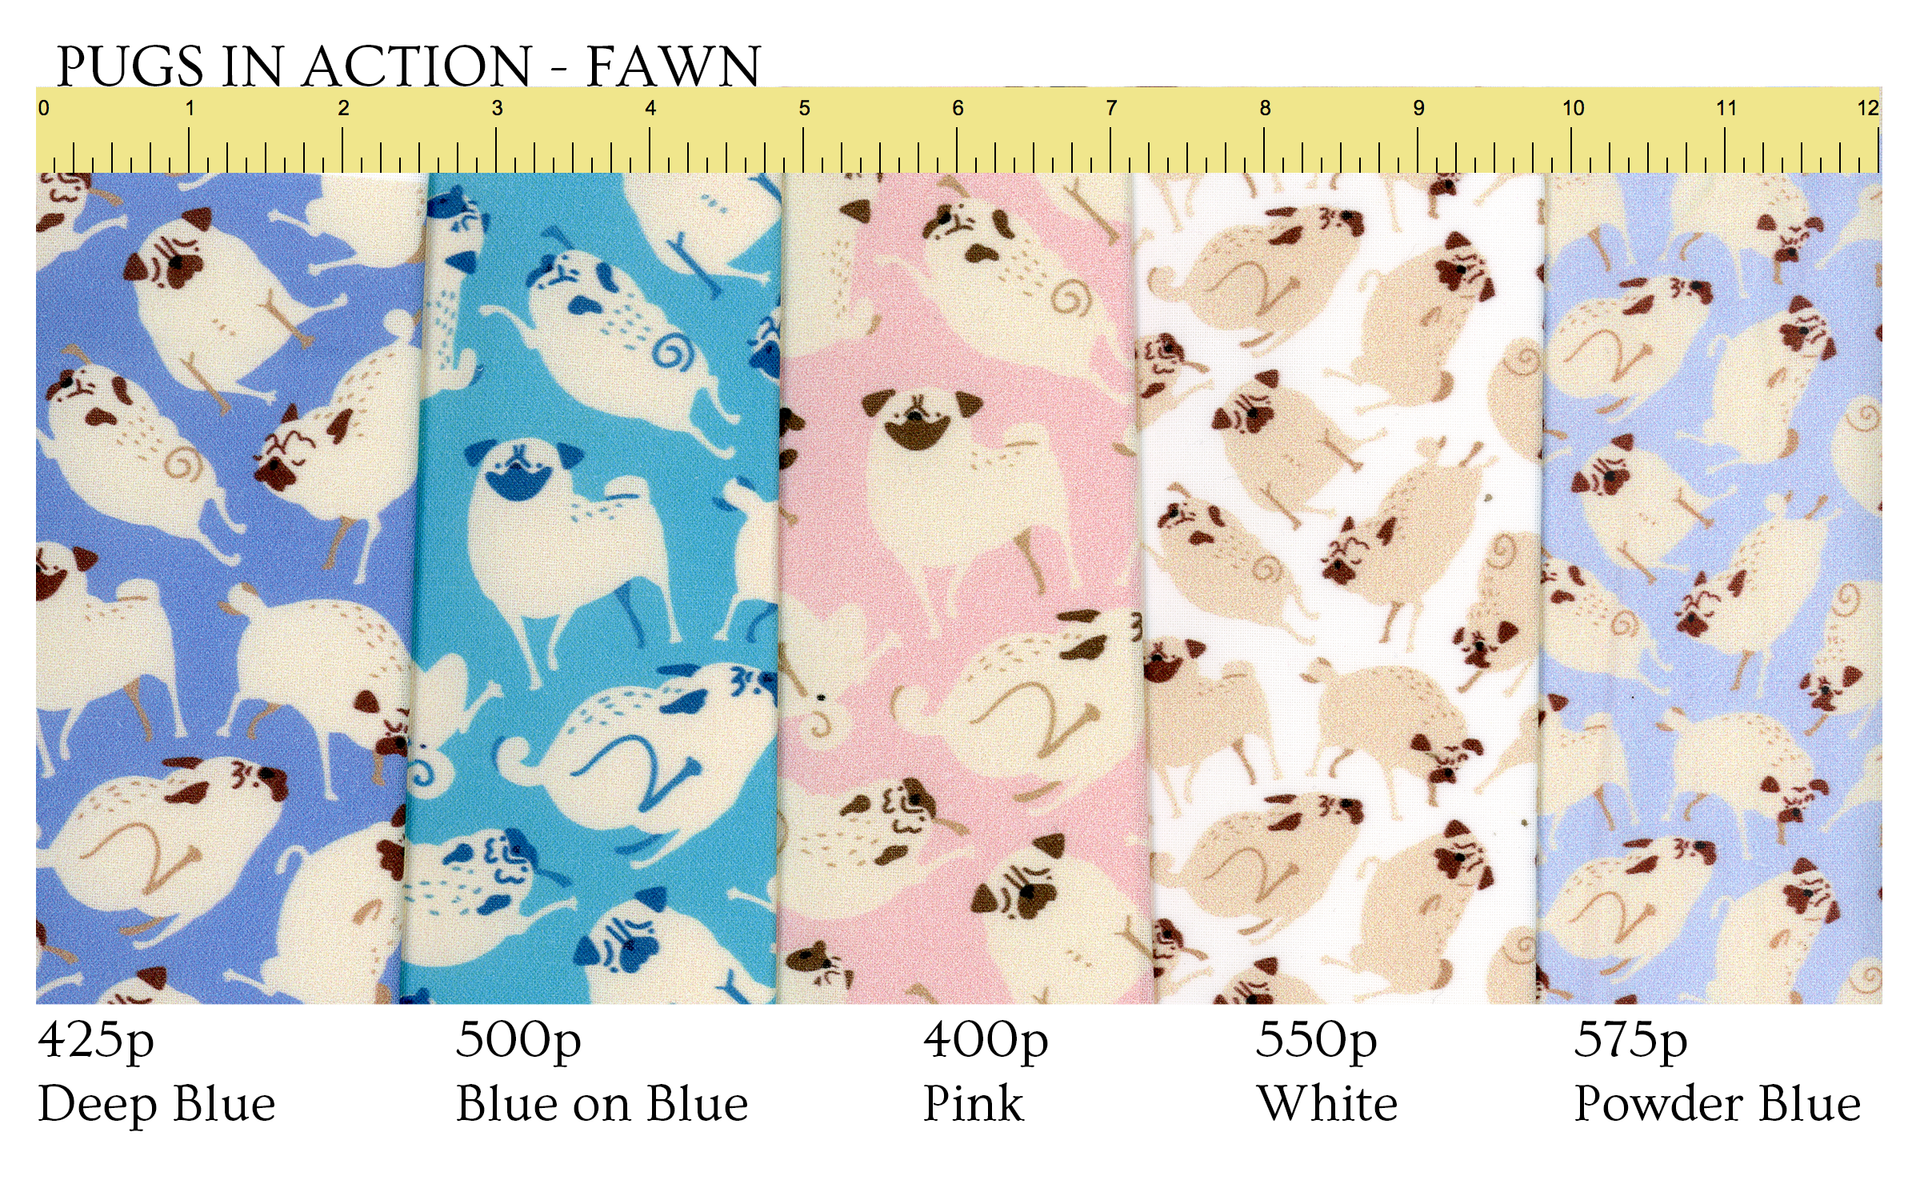 Follow this link to get Pugs in Action (fawn) patterns on Spoonflower!